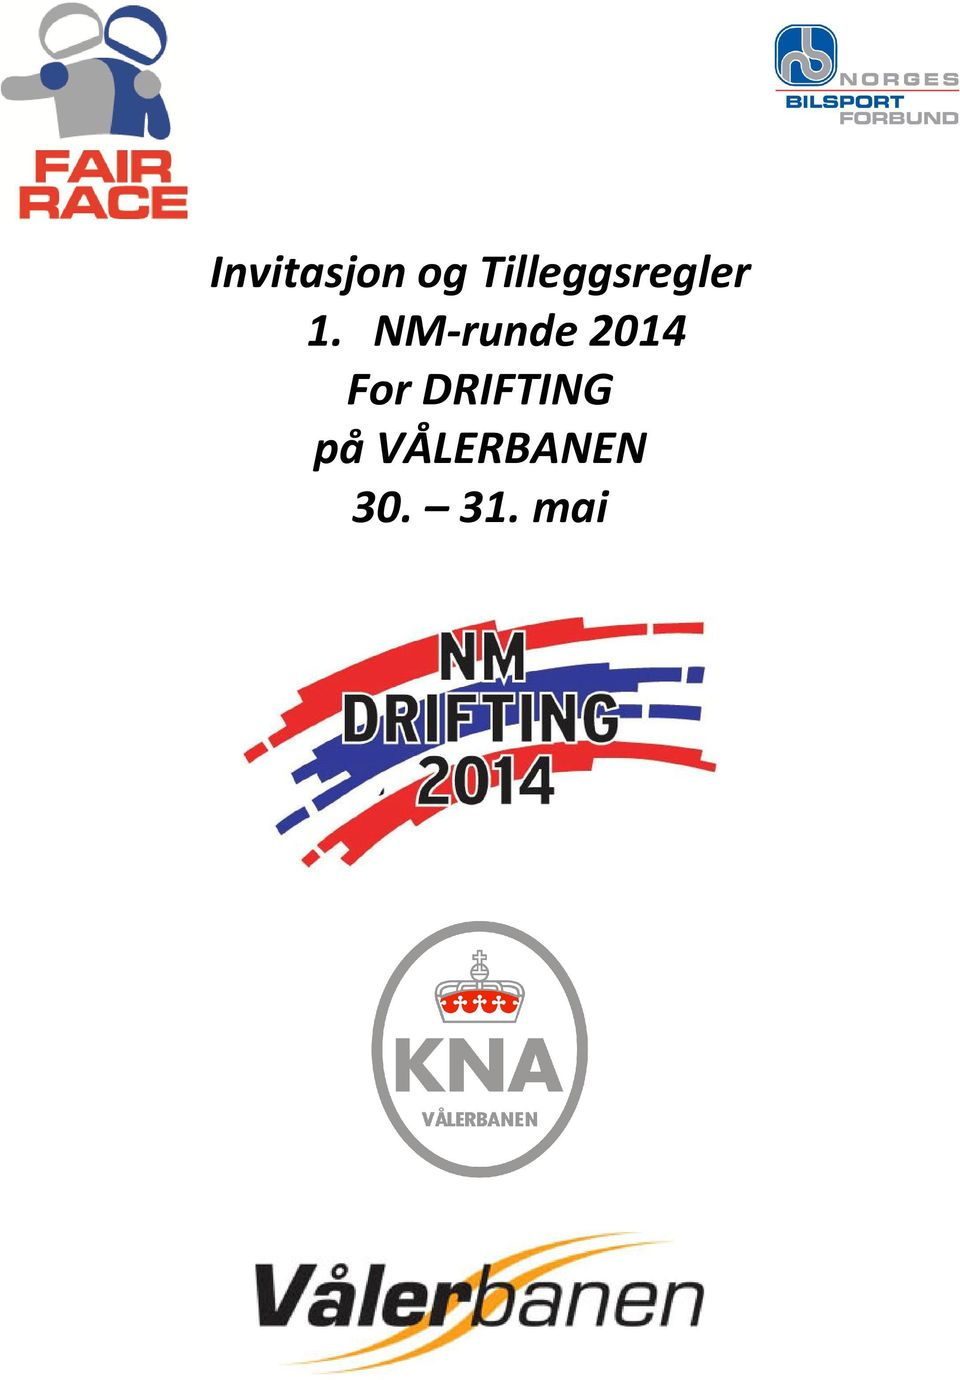 NM-runde 2014 For